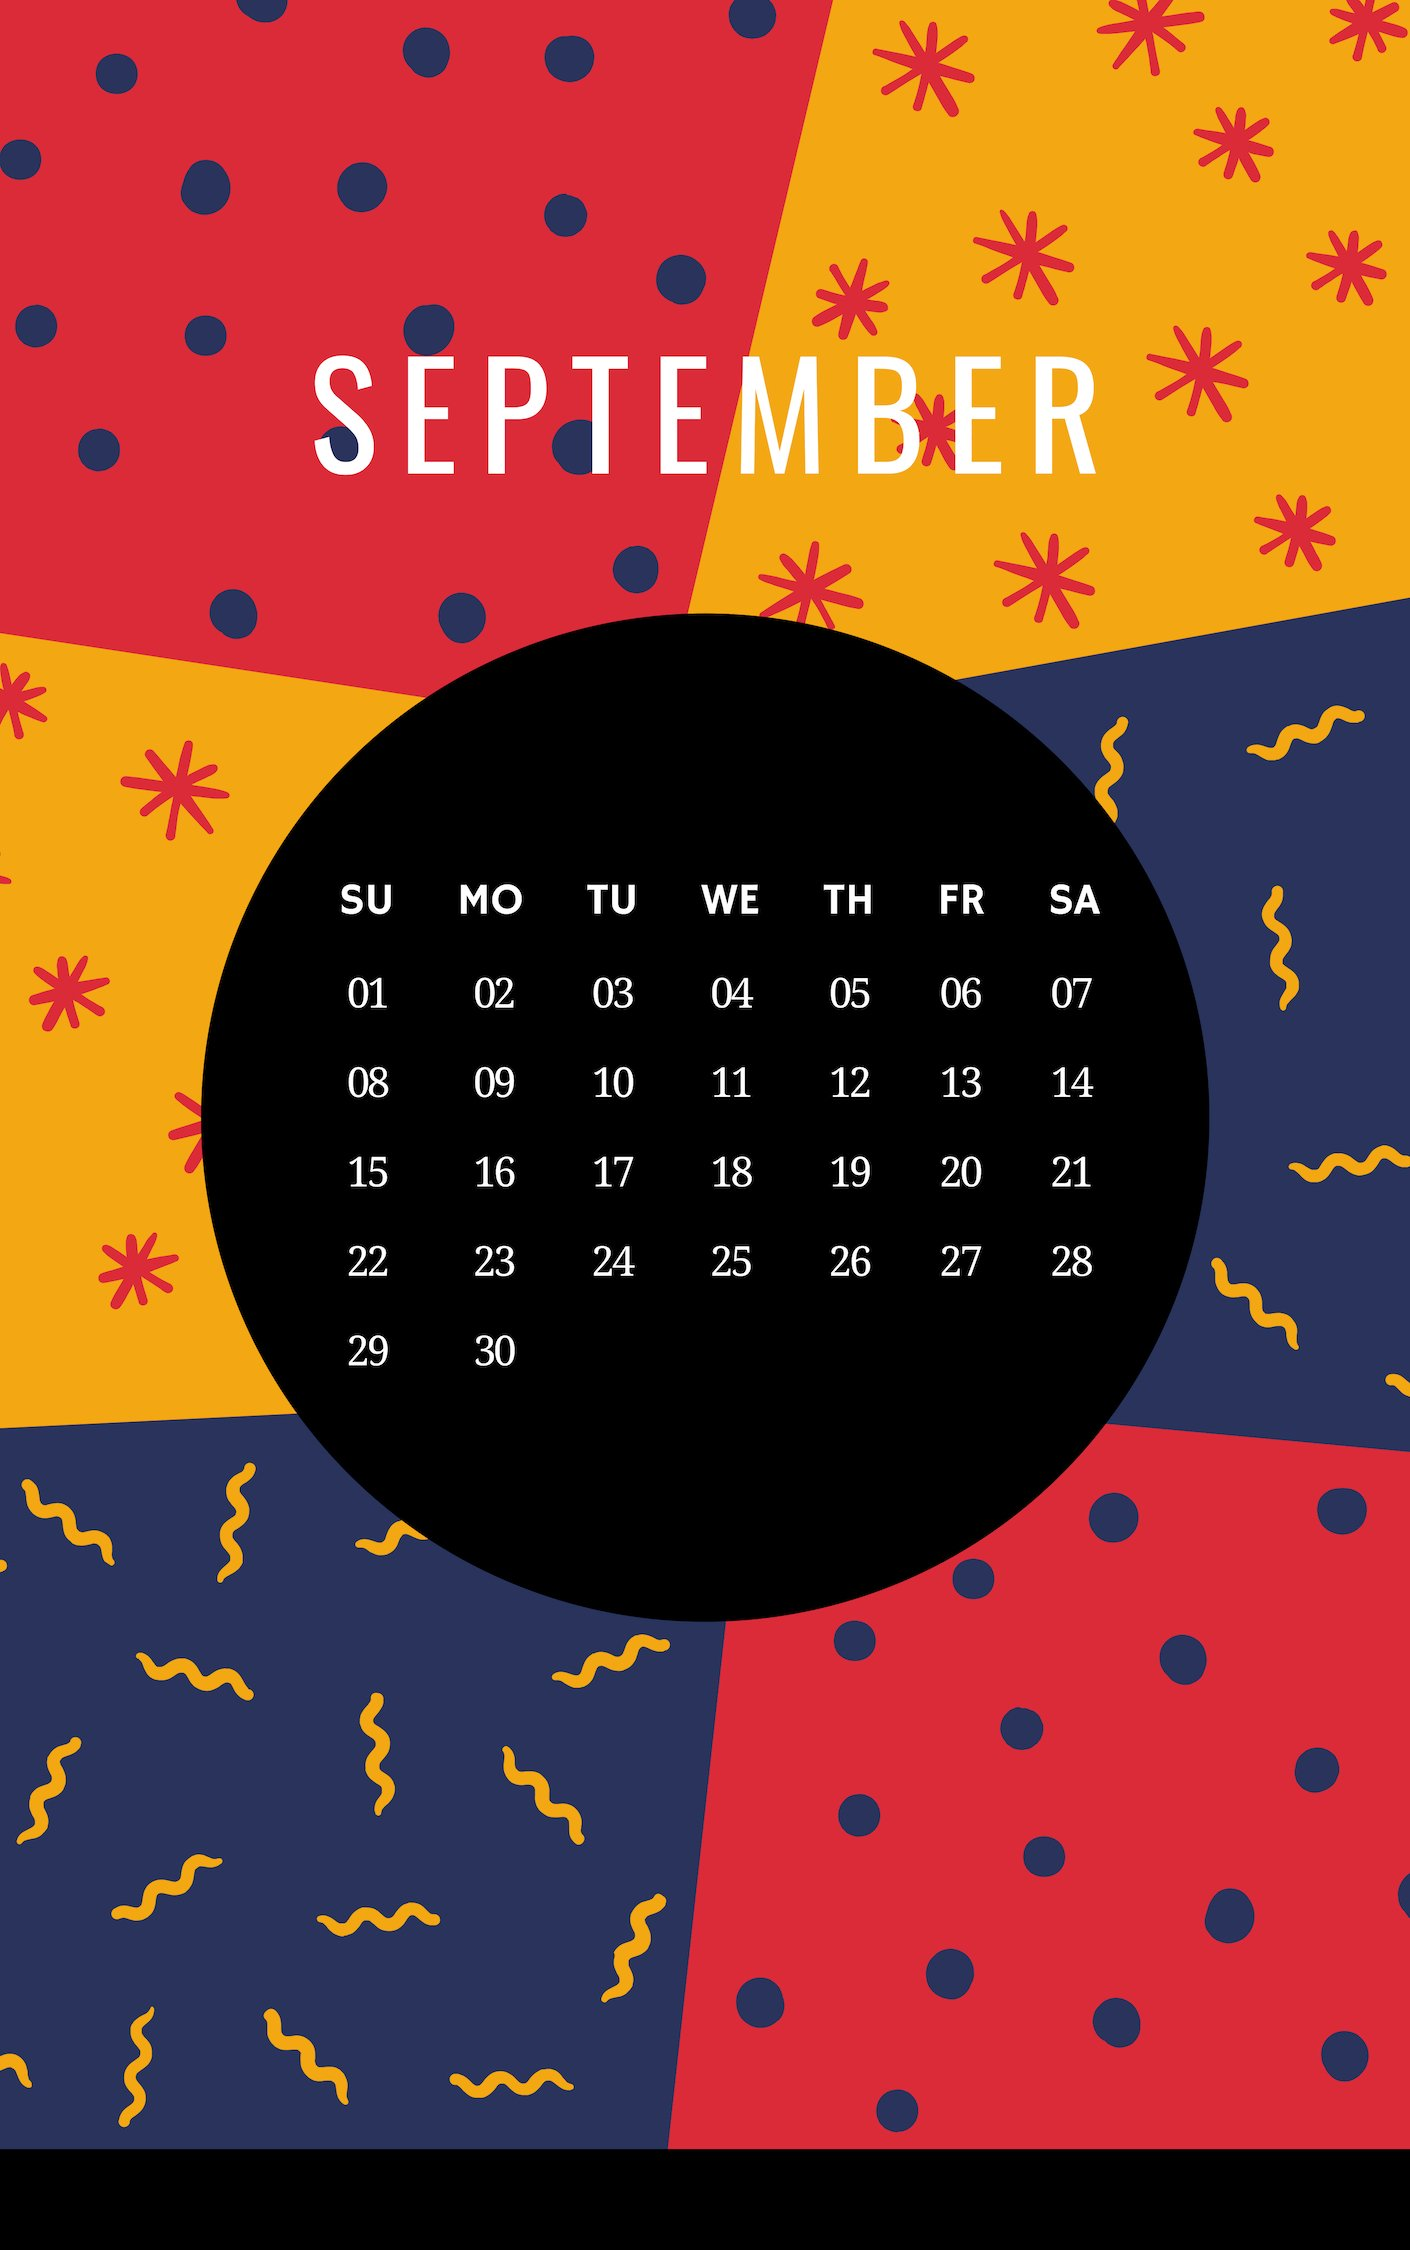 September 2019 iPhone Home screen Calendar